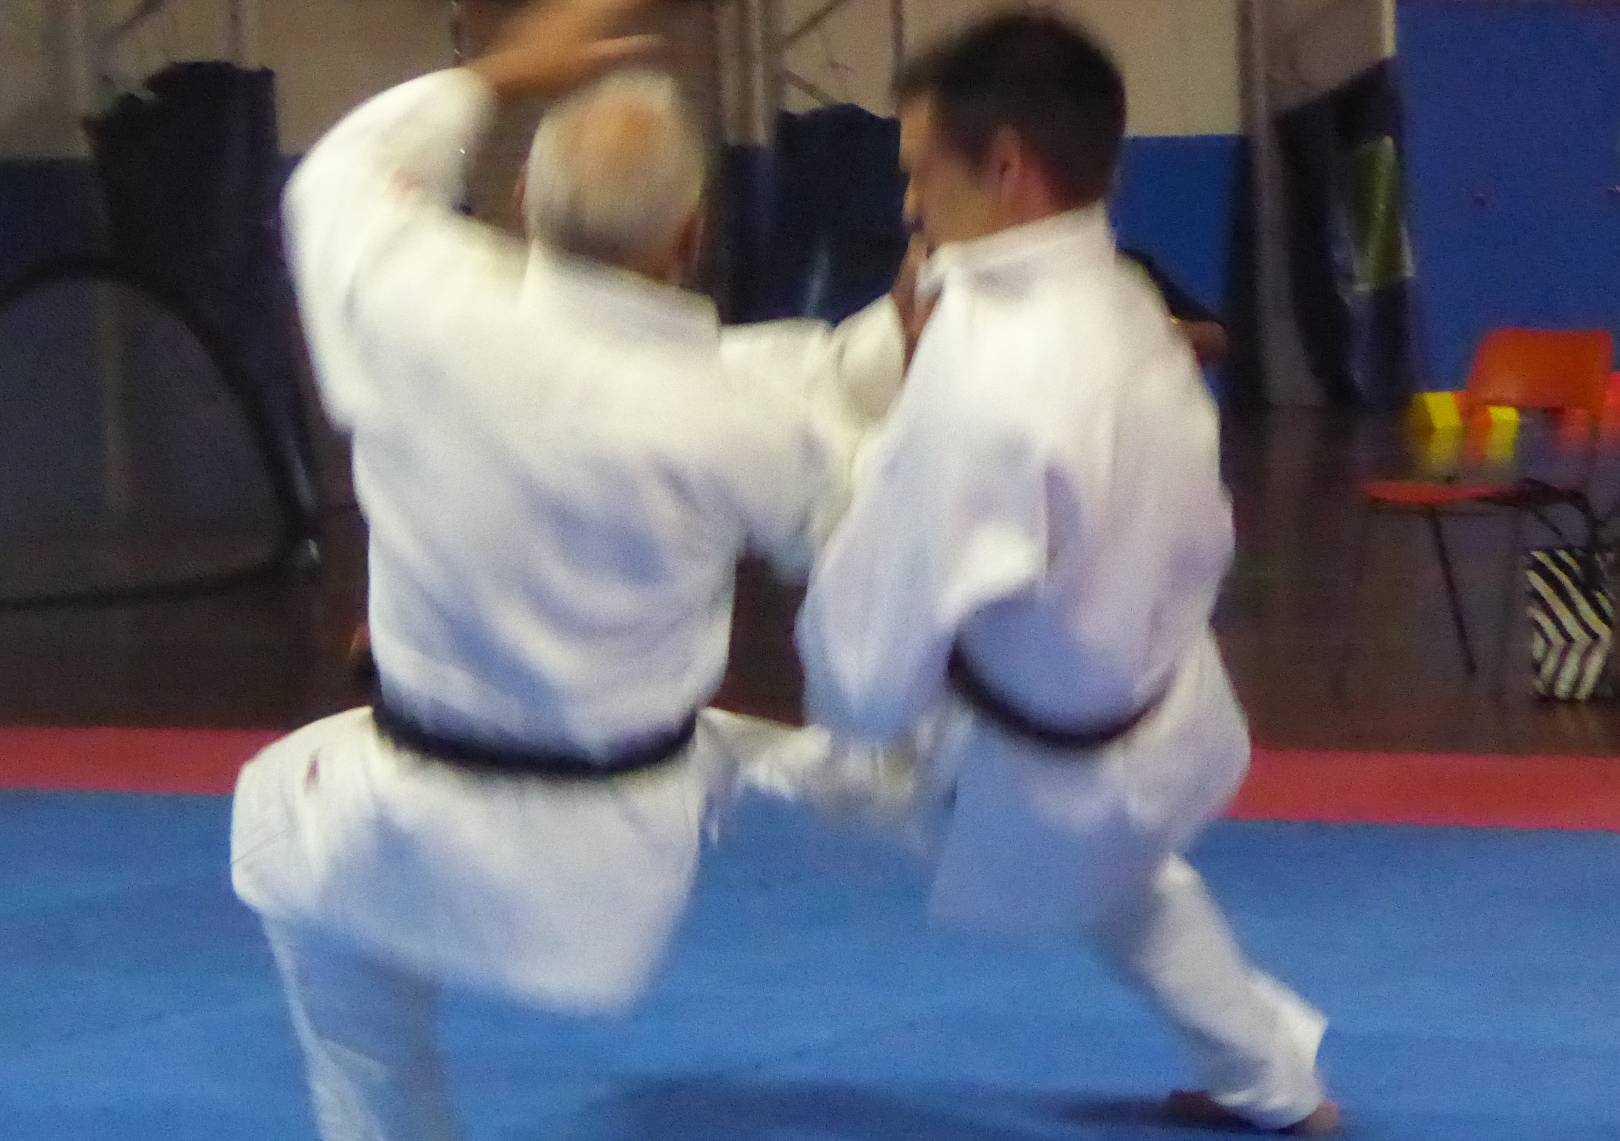 Australian Judo Union Inc. judo for those with disability